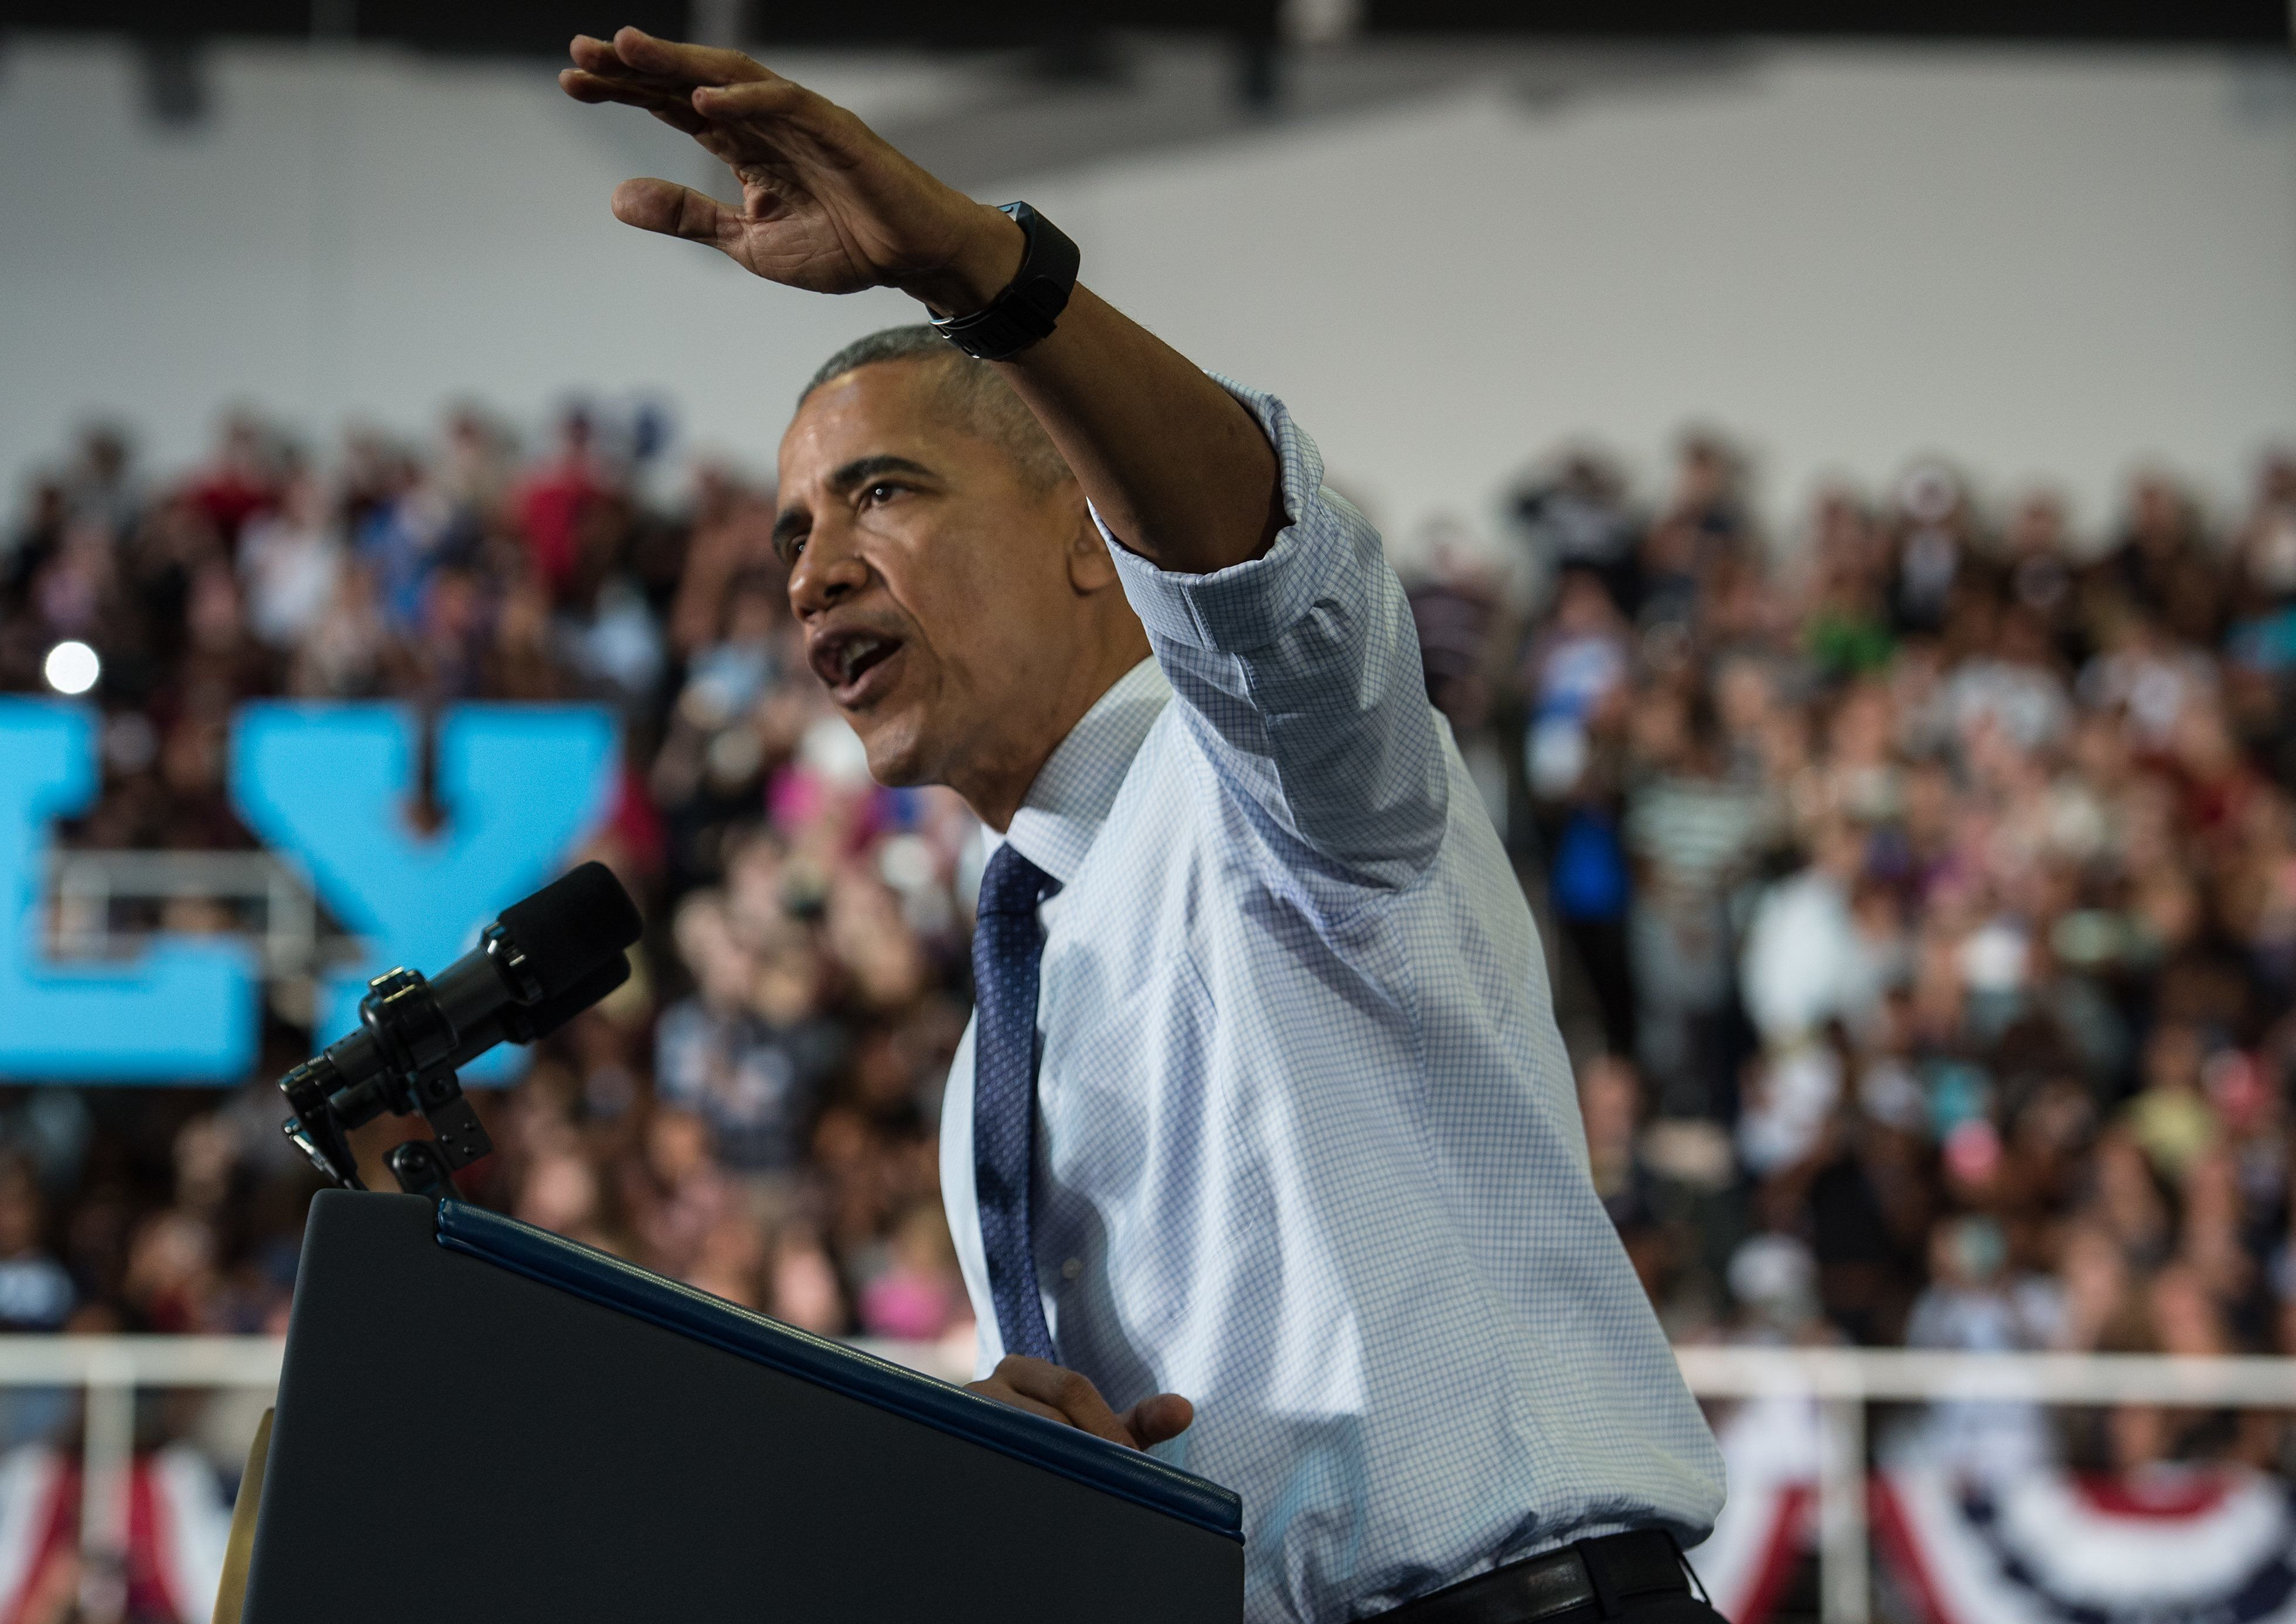 When President Barack Obama was elected in 2008, the economy was in a tailspin. Now, it is experiencing the longest cons